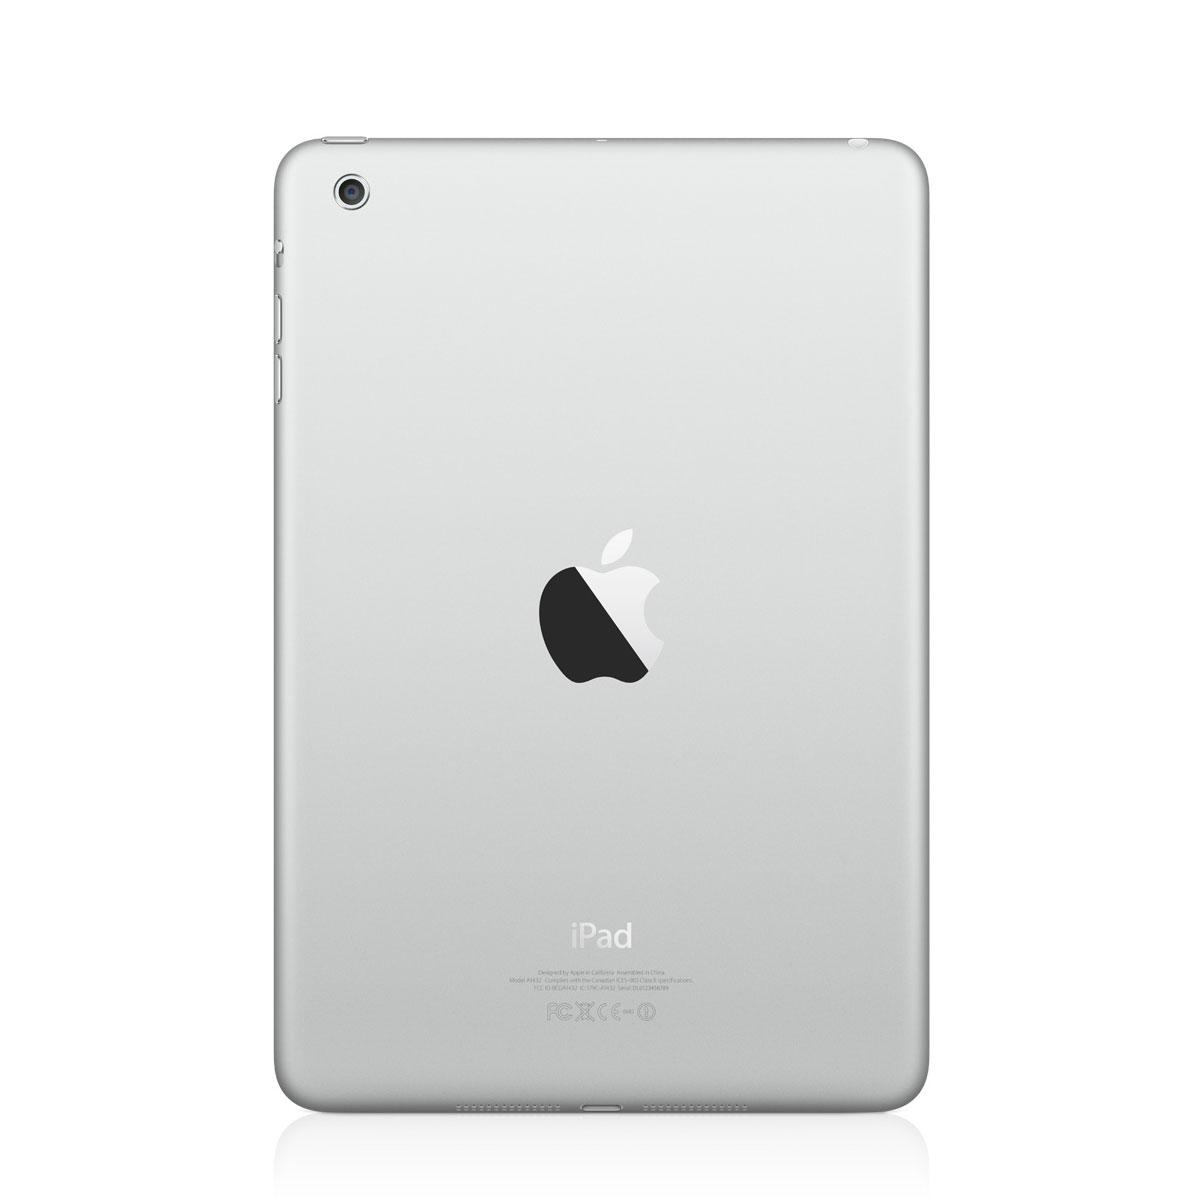 iPad mini 3 128 GB - Wifi + 4G - Plata - Libre